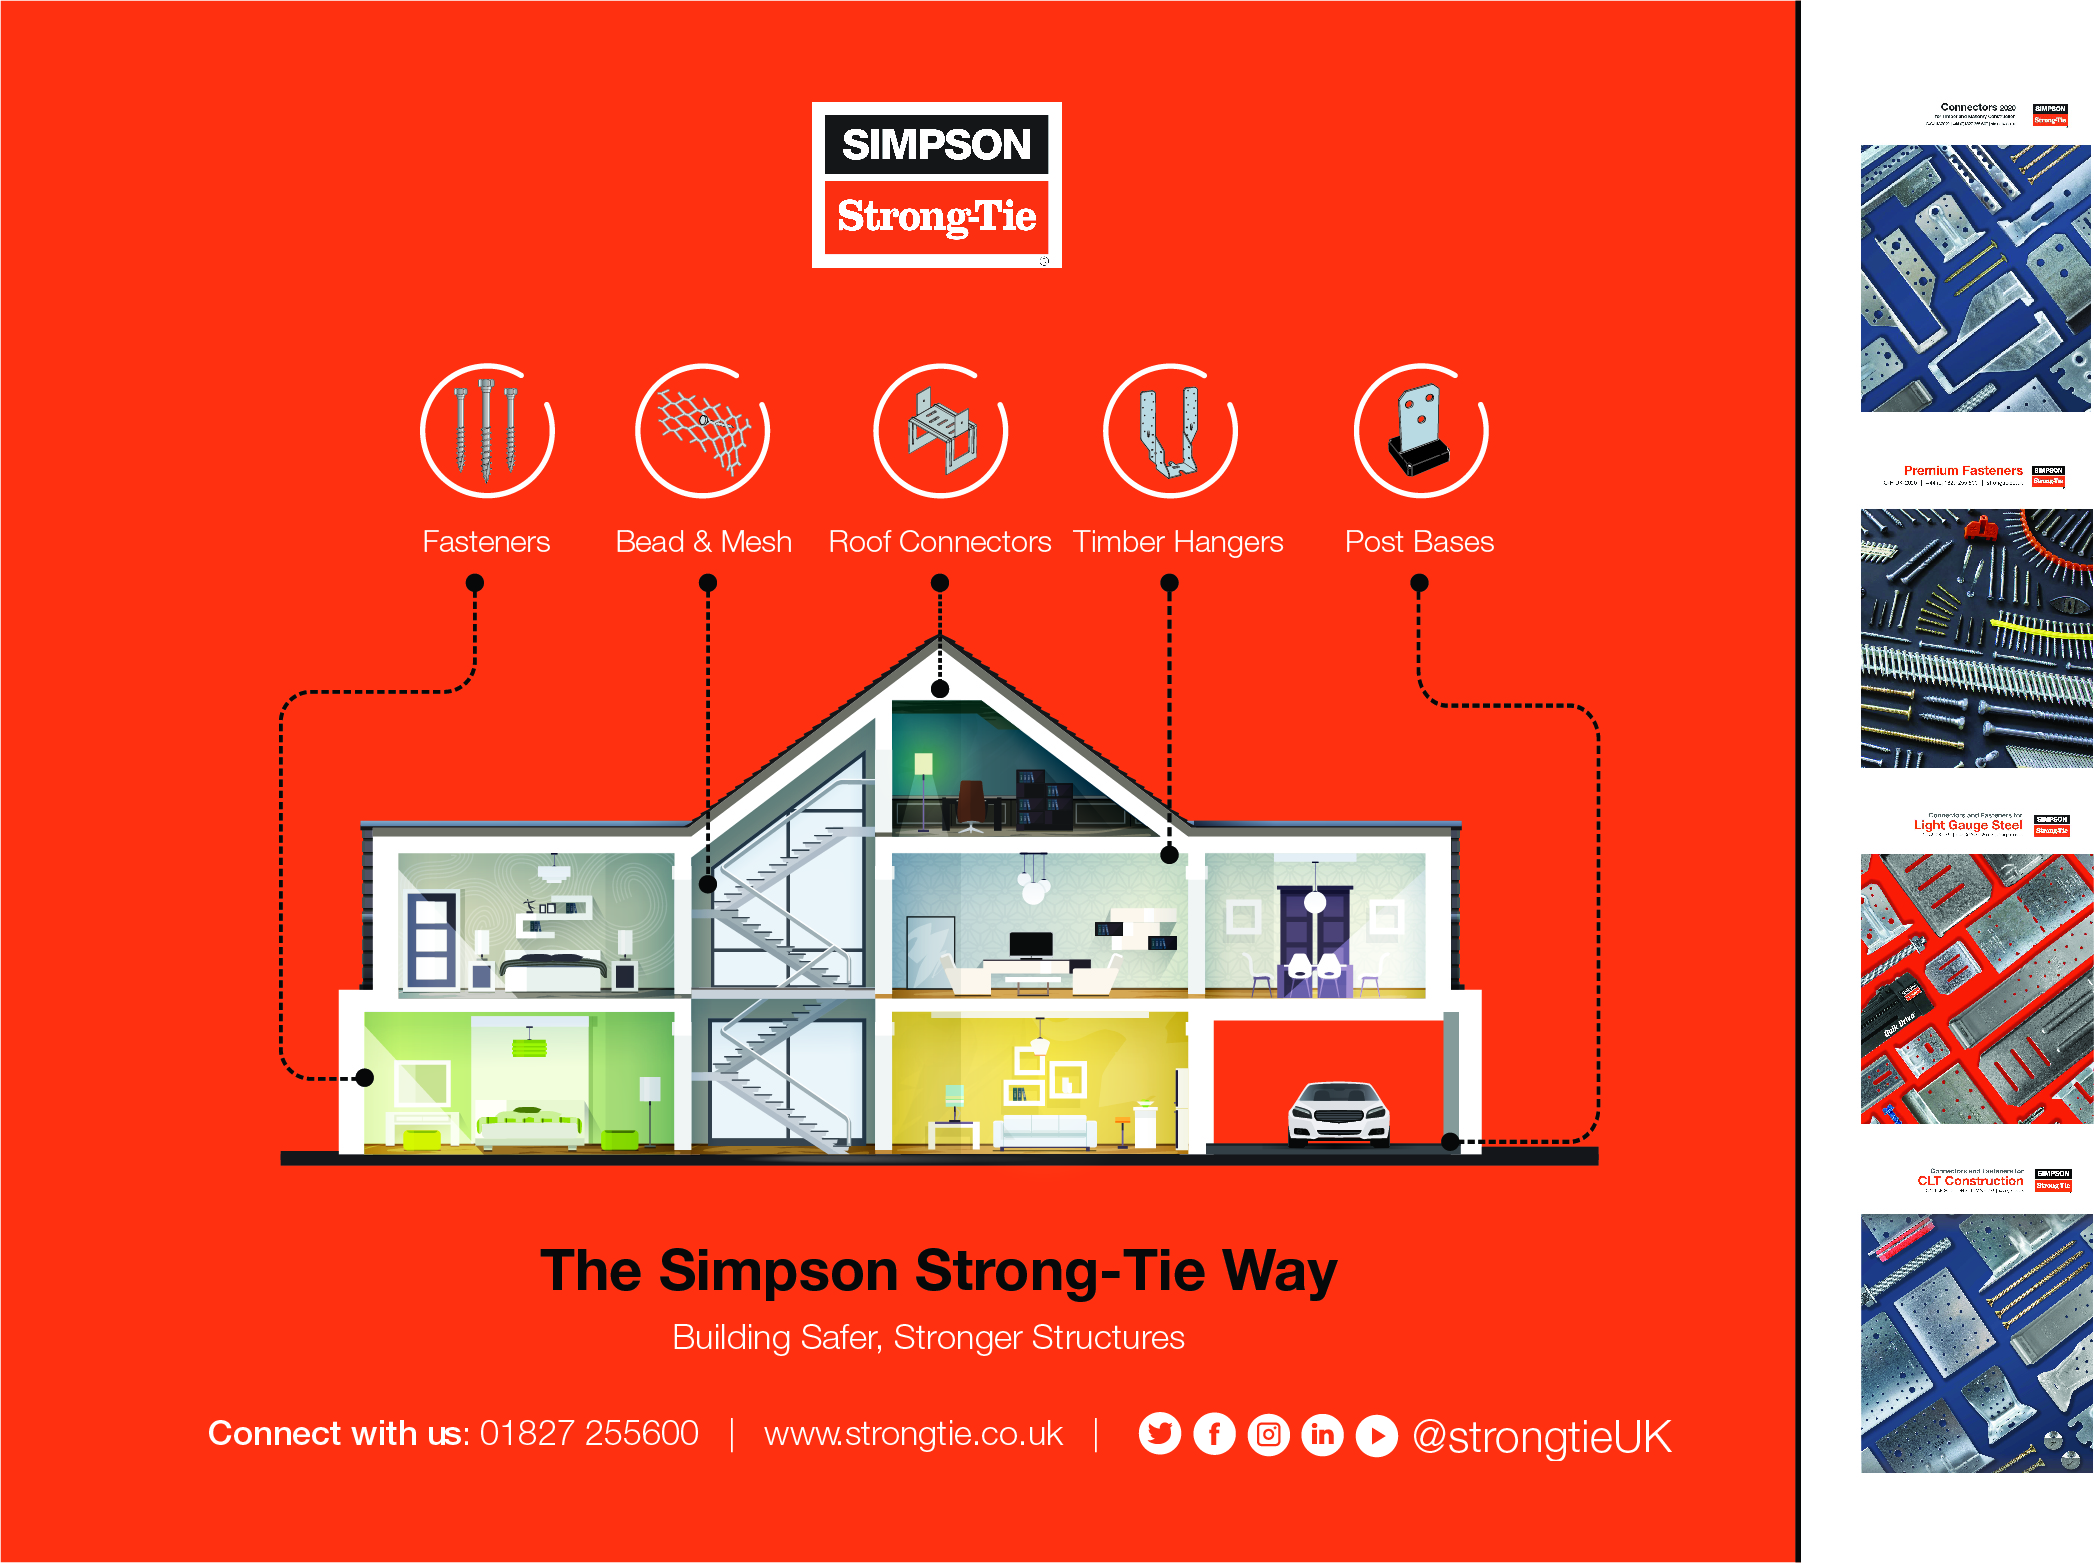 Exciting new innovations from Simpson Strong-Tie